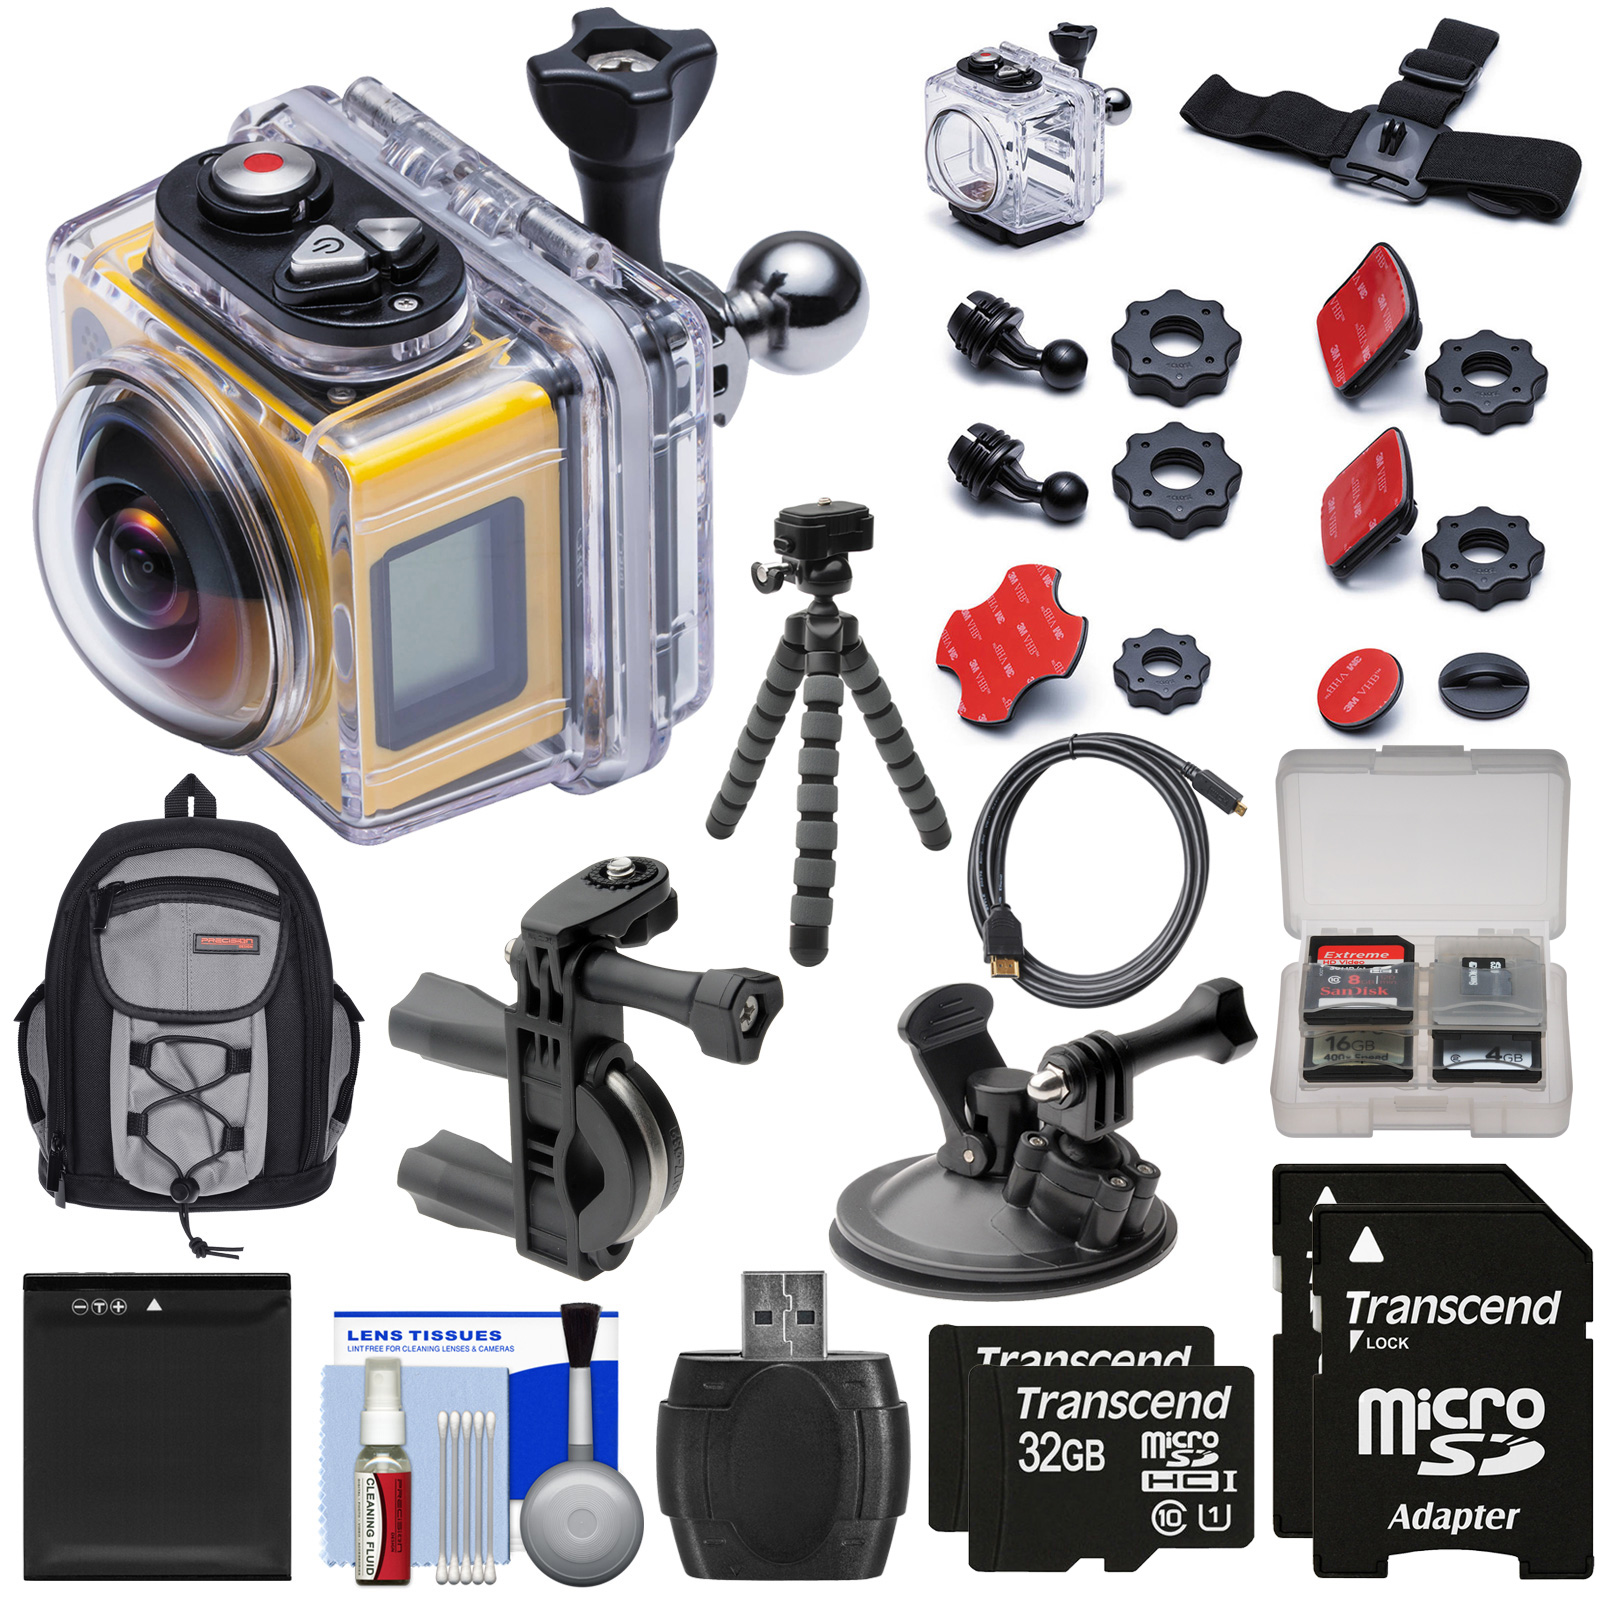 Kodak PixPro SP360 Wi-Fi HD Video Action Camera Camcorder - Aqua Sport Pack + Bike & Suction Cup Mounts + 64GBs + Battery + Backpack + Tripod Kit PixPro SP360